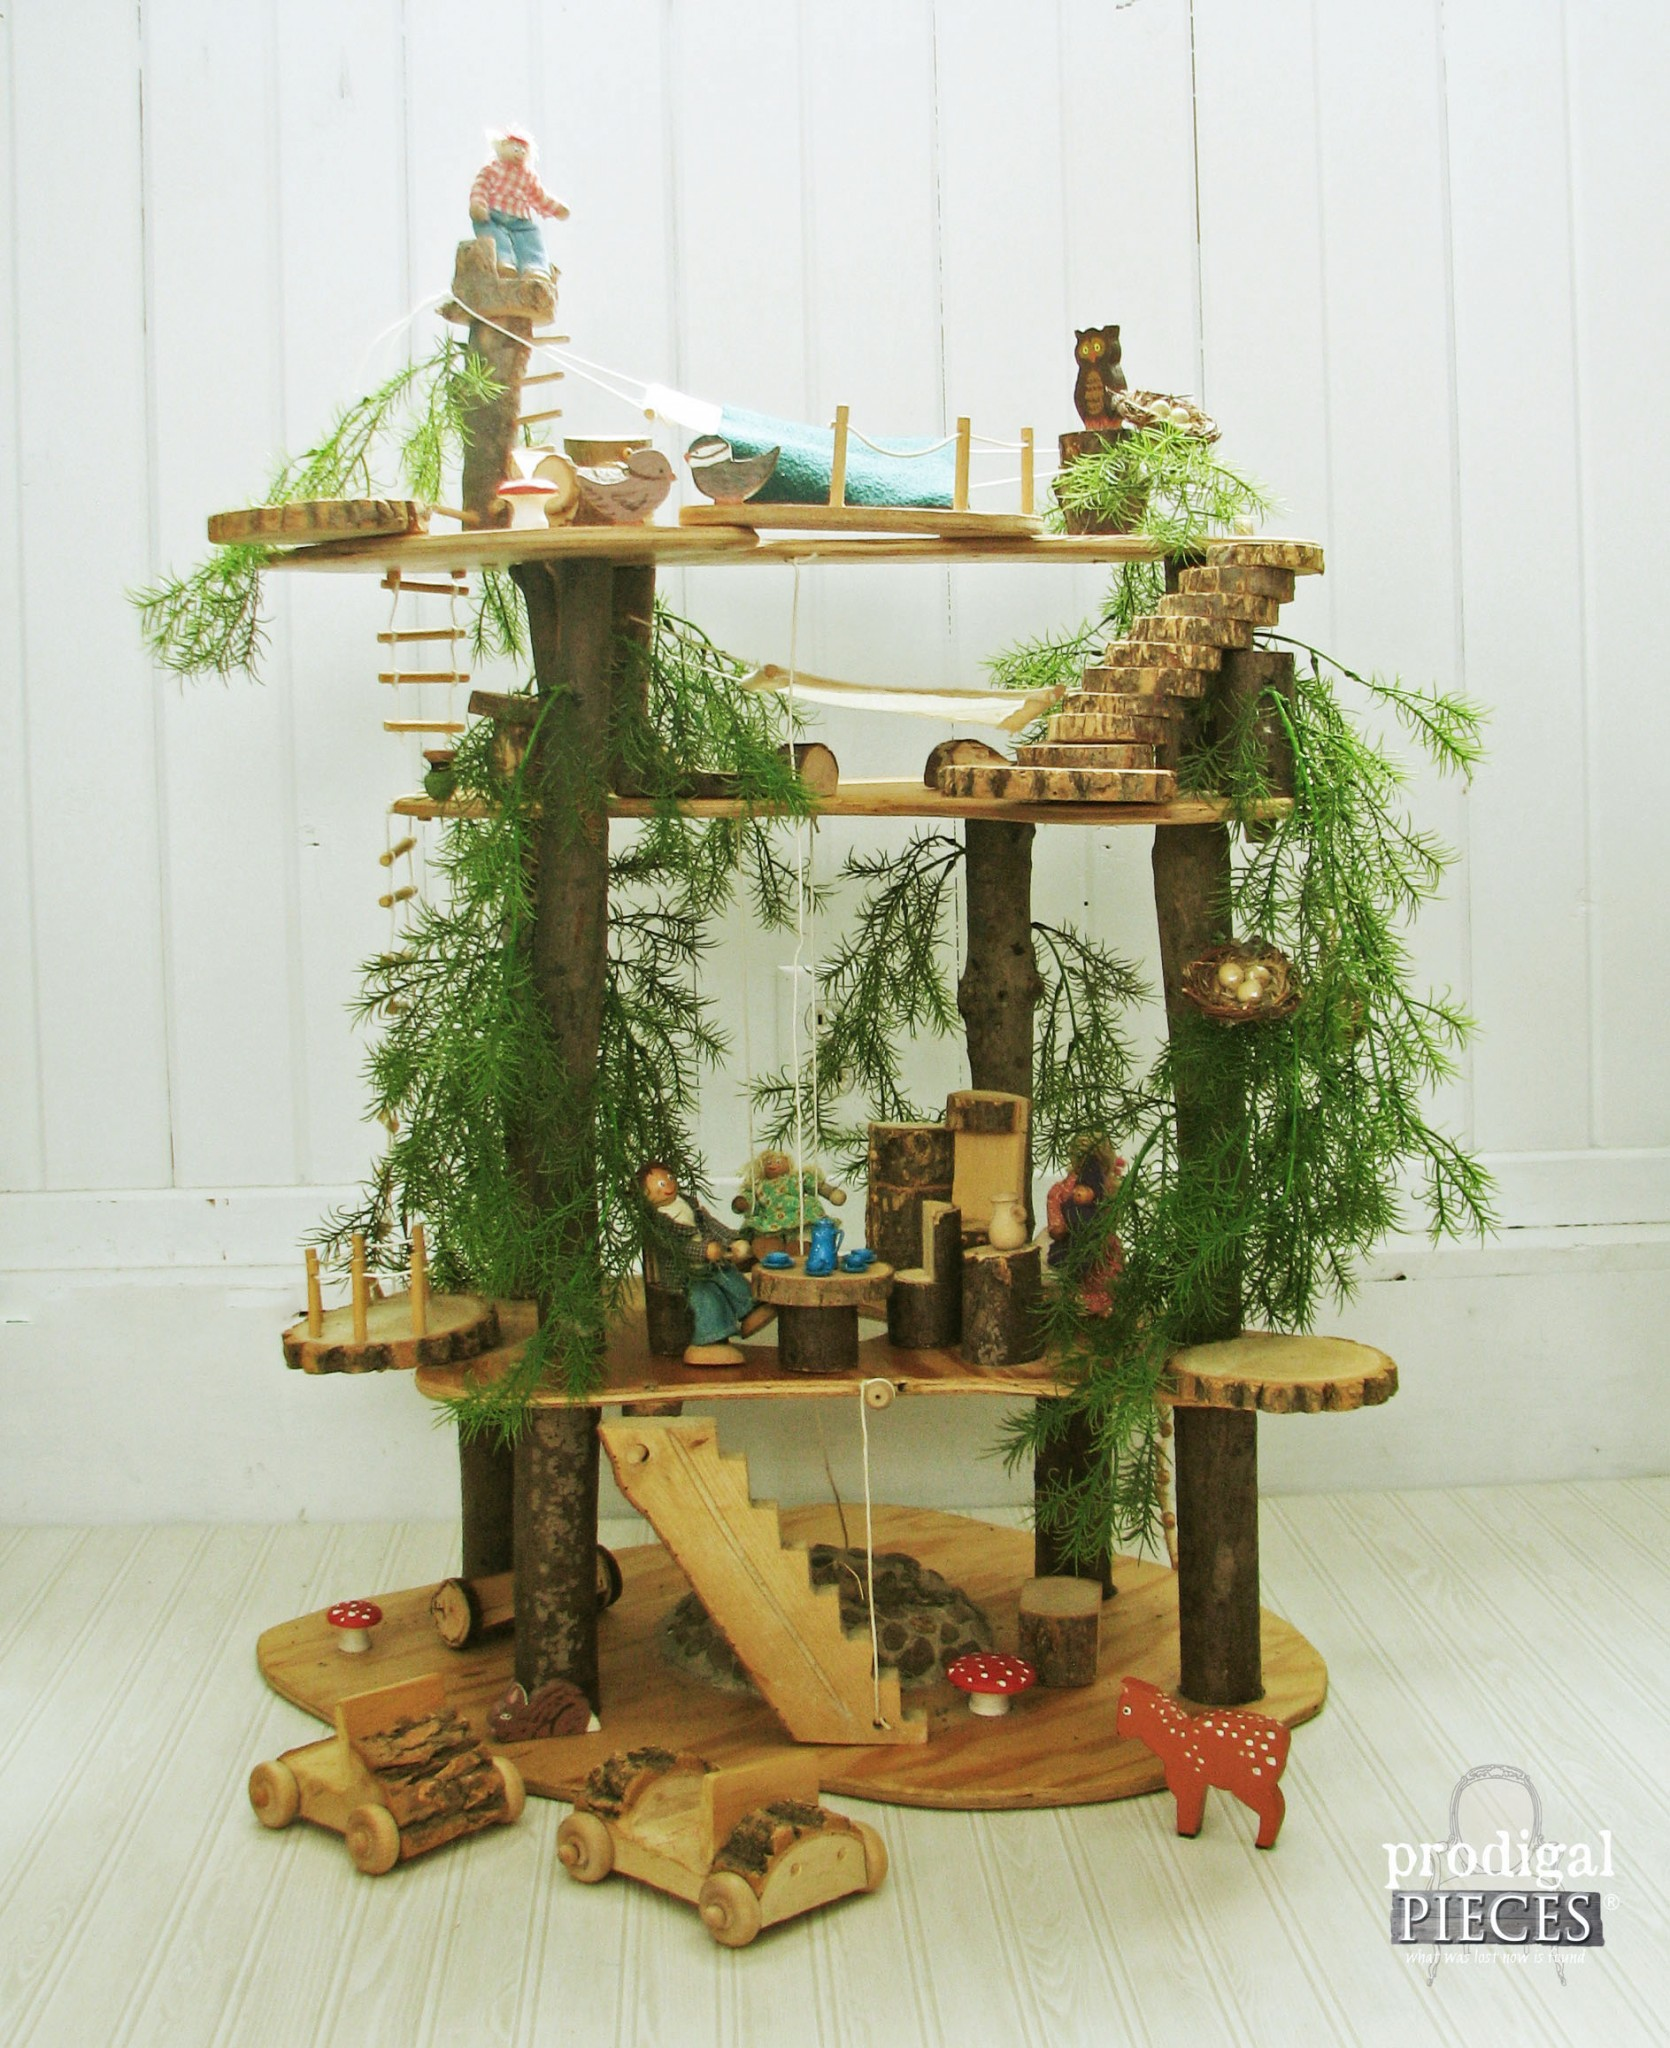 Handmade Wooden Toy Tree Fort by Prodigal Pieces | www.prodigalpieces.com